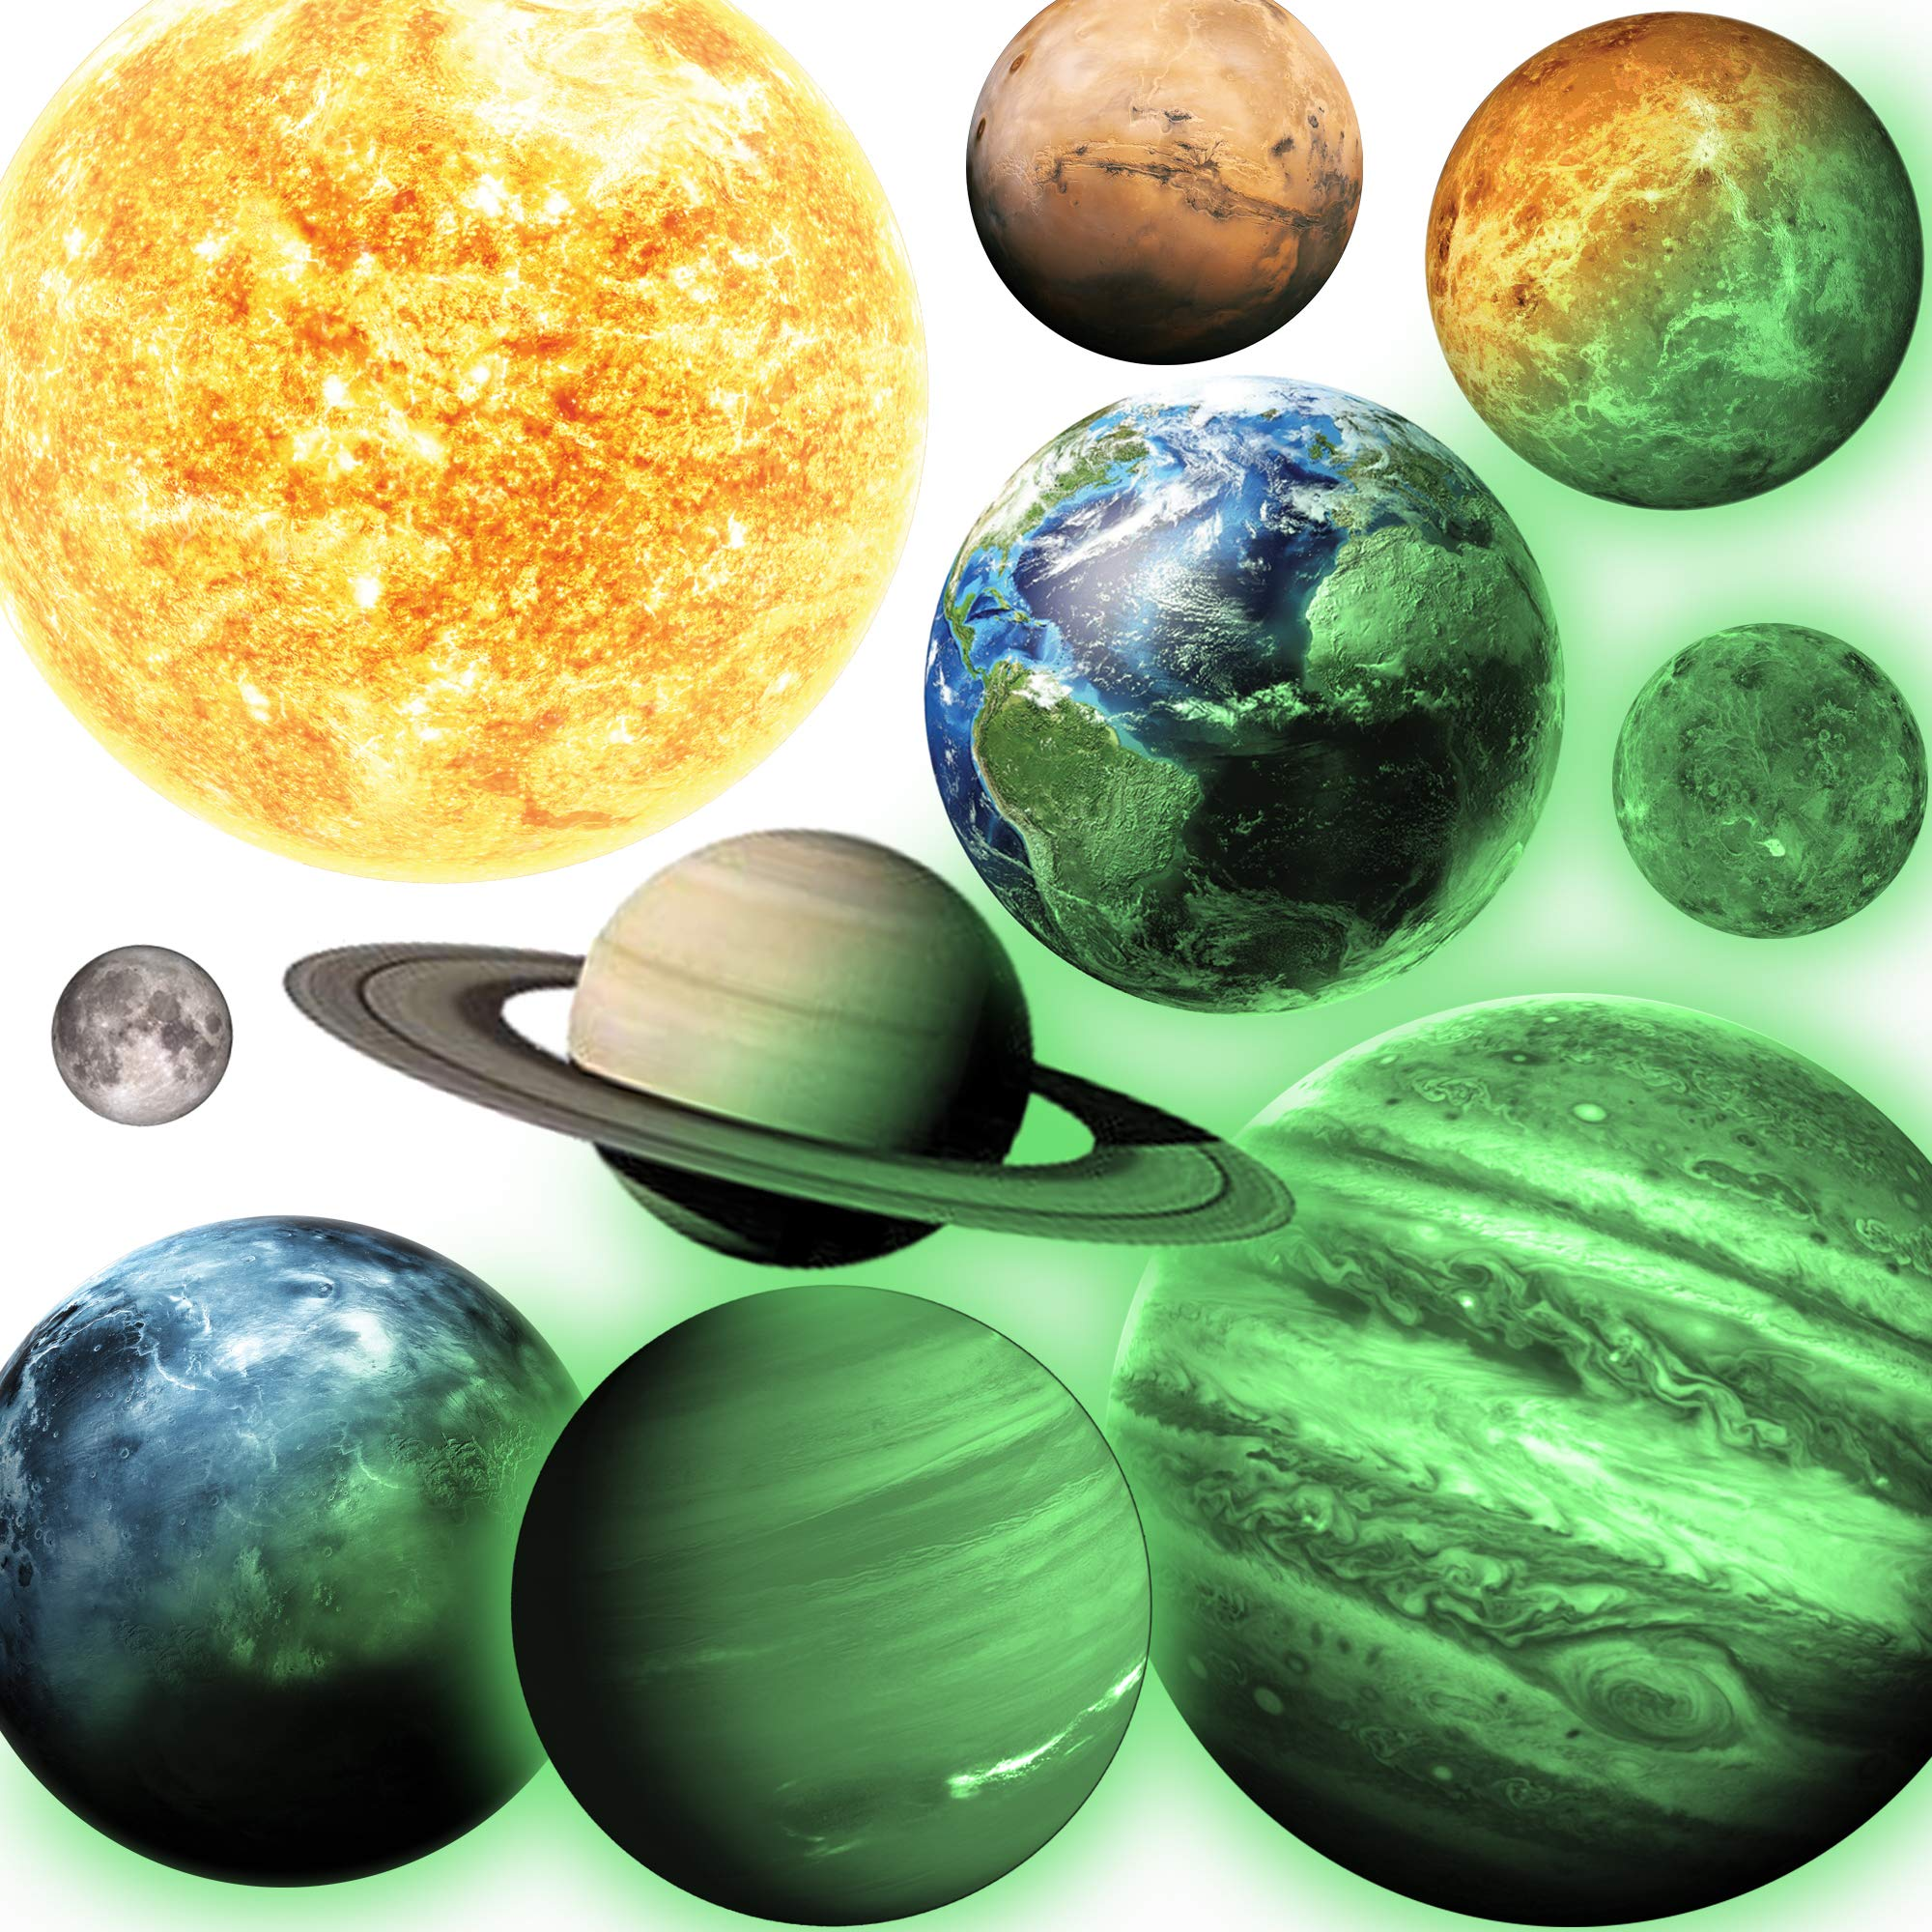 Glow in The Dark Planets, Bright Solar System Wall Stickers -Sun Earth Mars and so on,9 Glowing Ceiling Decals for Bedroom Living Room,Shining Space Decoration for Kids for Girls and Boys